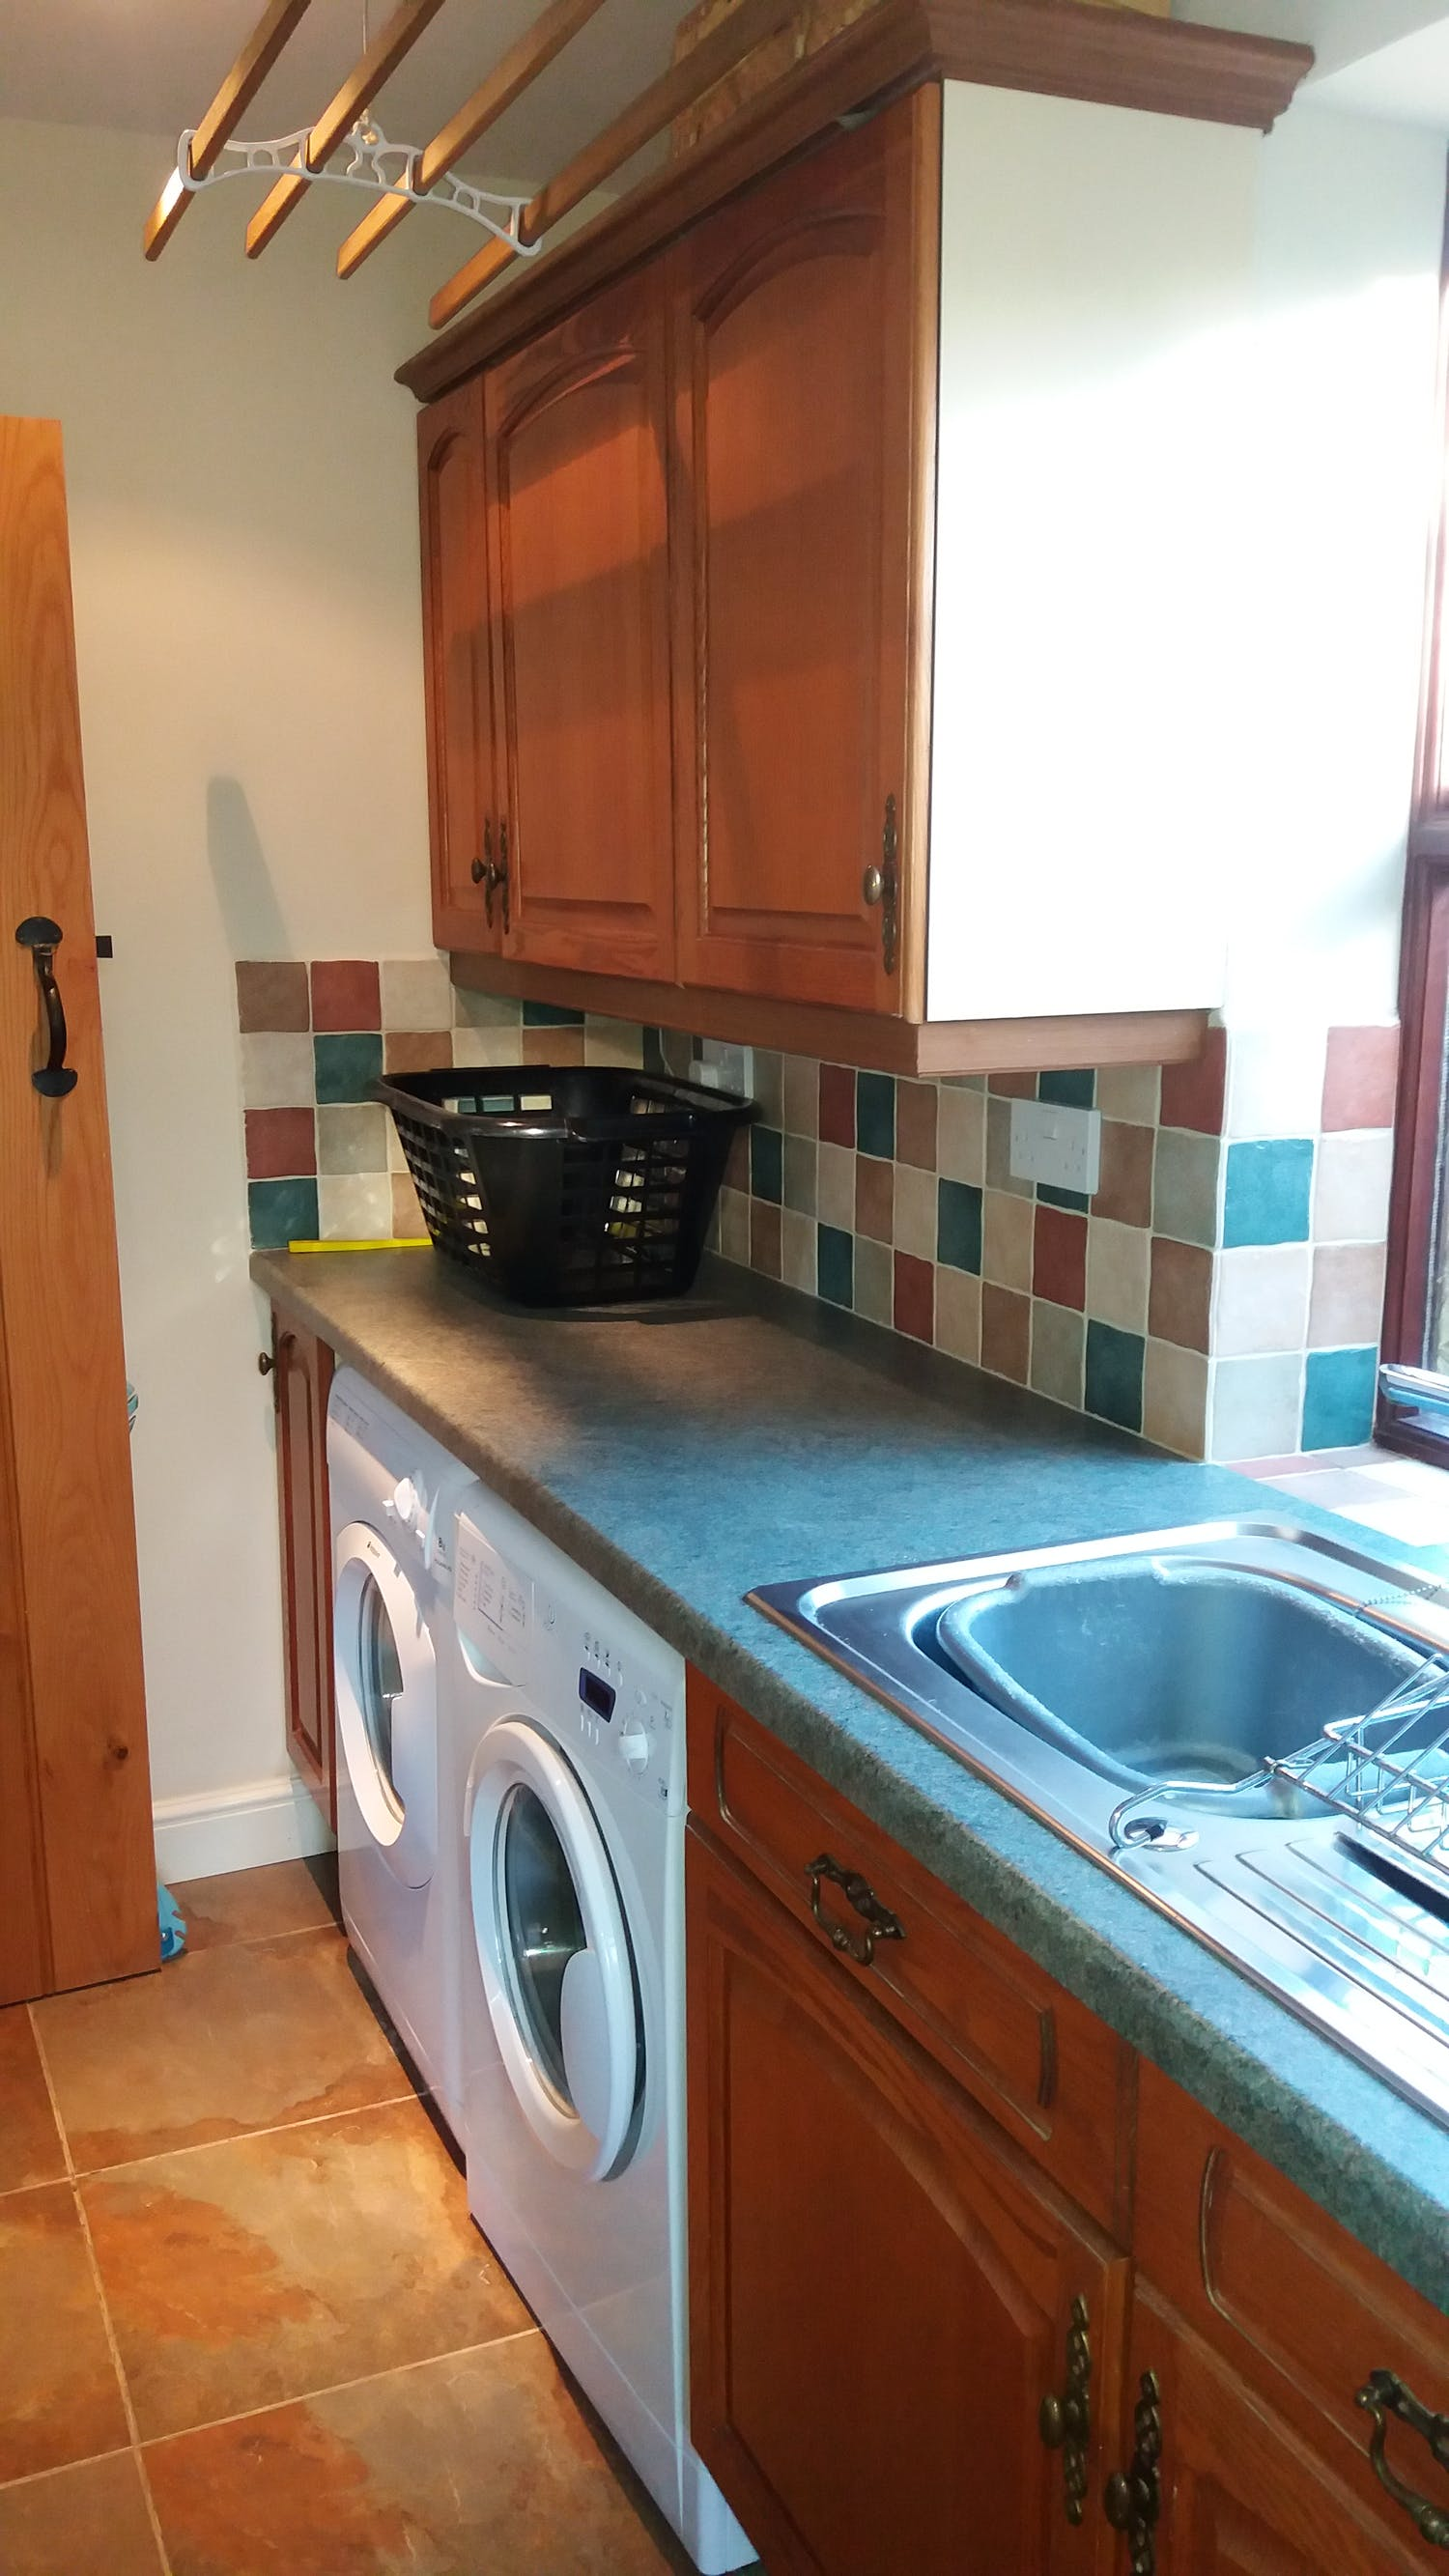 Gallery kingfisher cottage yeovil kingfisher cottage - Tumble dryer for small space pict ...